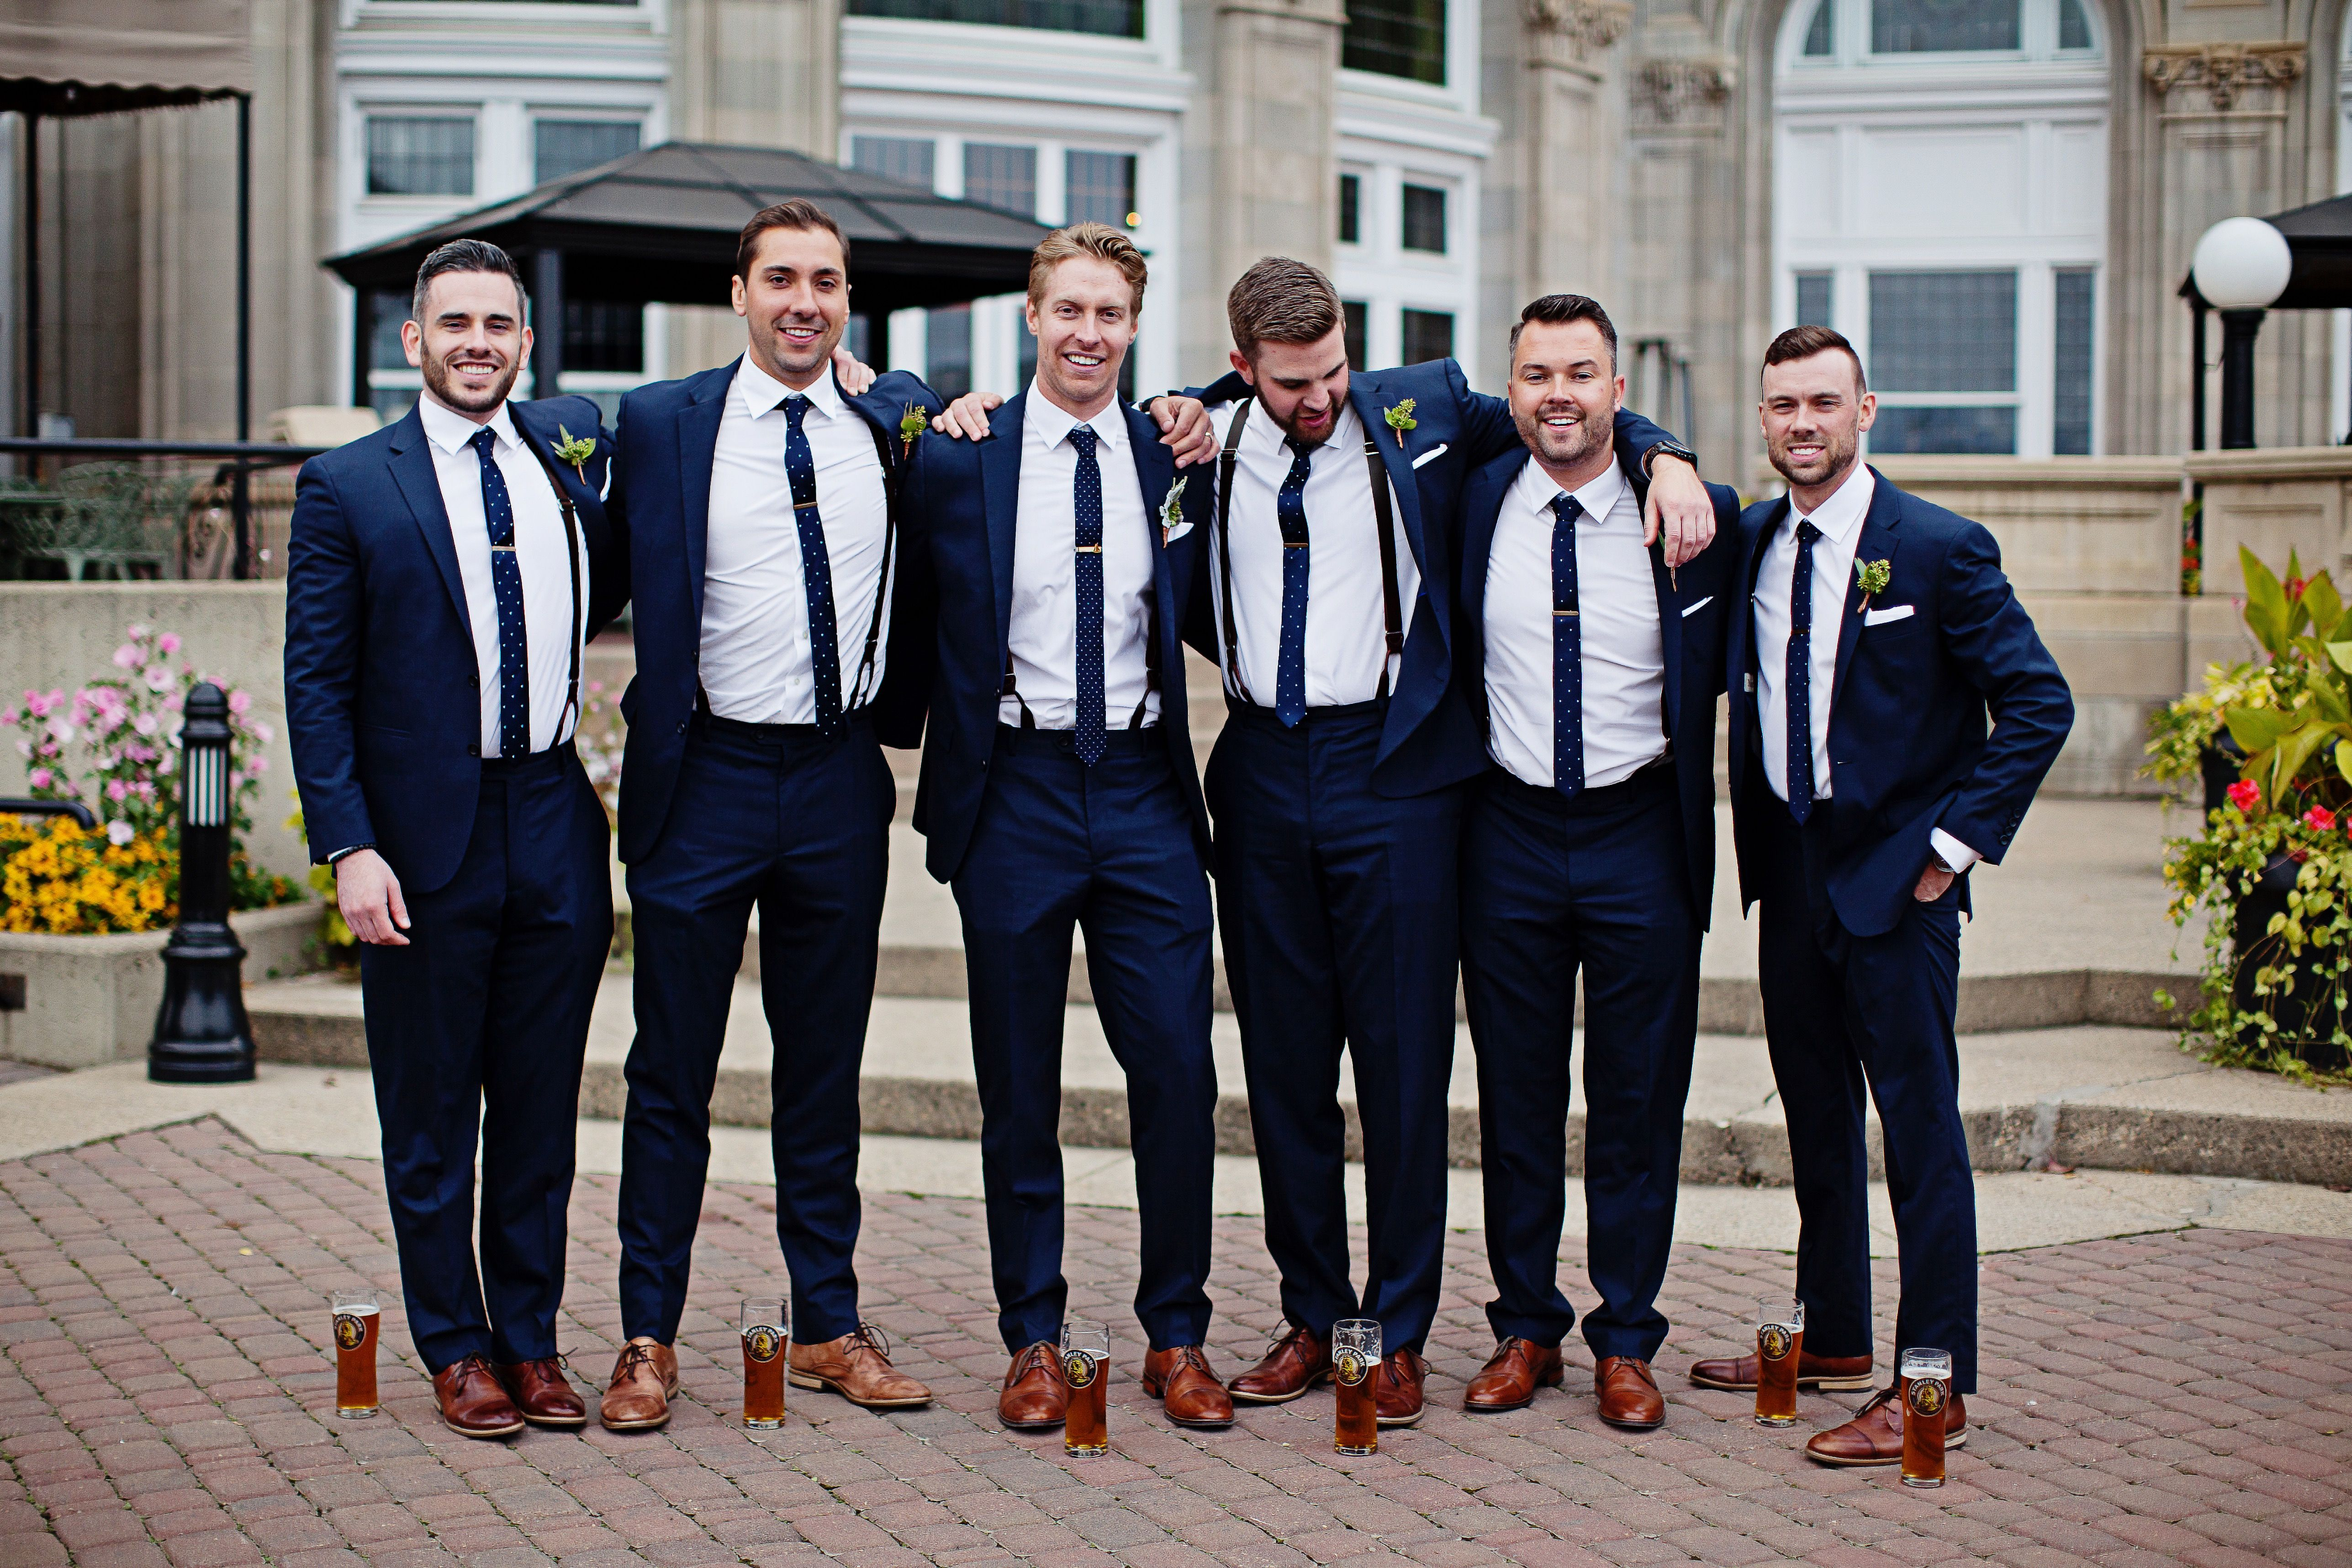 Wedding party wedding photography blush copper white navy suits